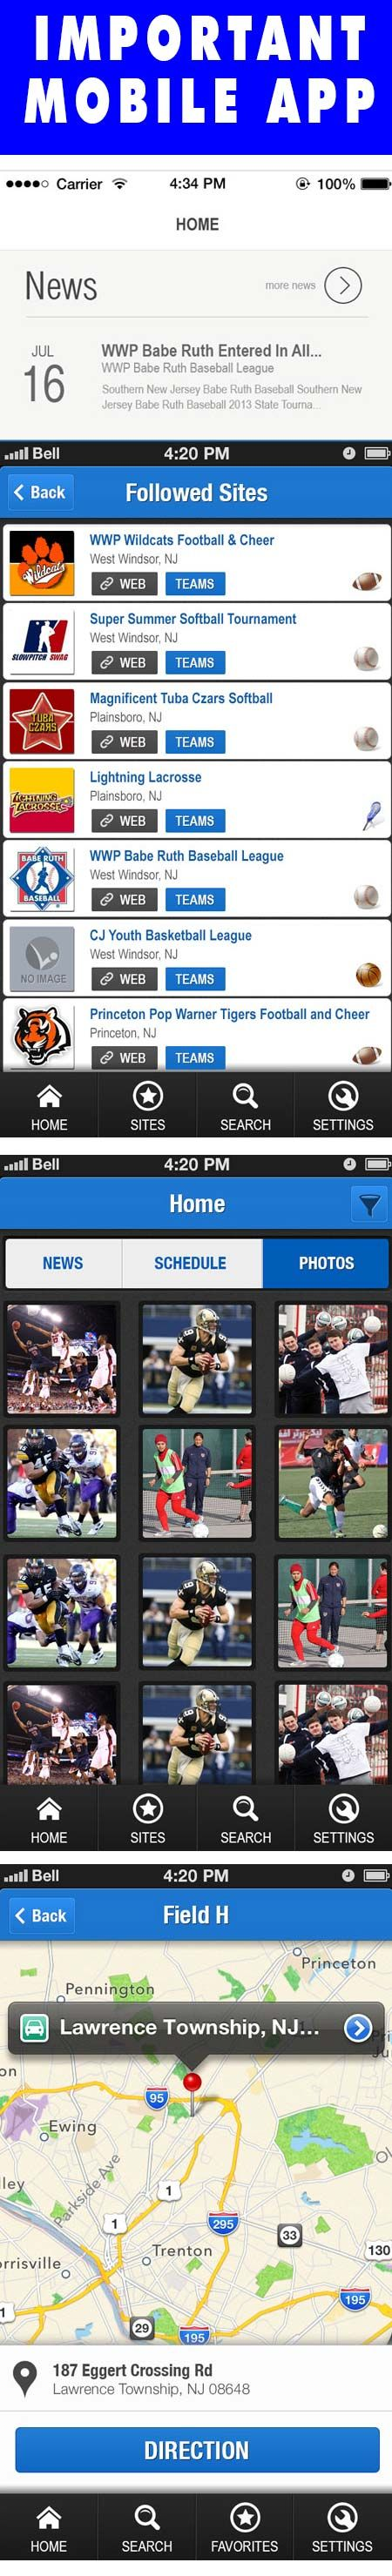 The My LeagueLineup app links to your LeagueLineup account to bring you the latest News, Schedules, and Photos from your selected LeagueLineup sites.